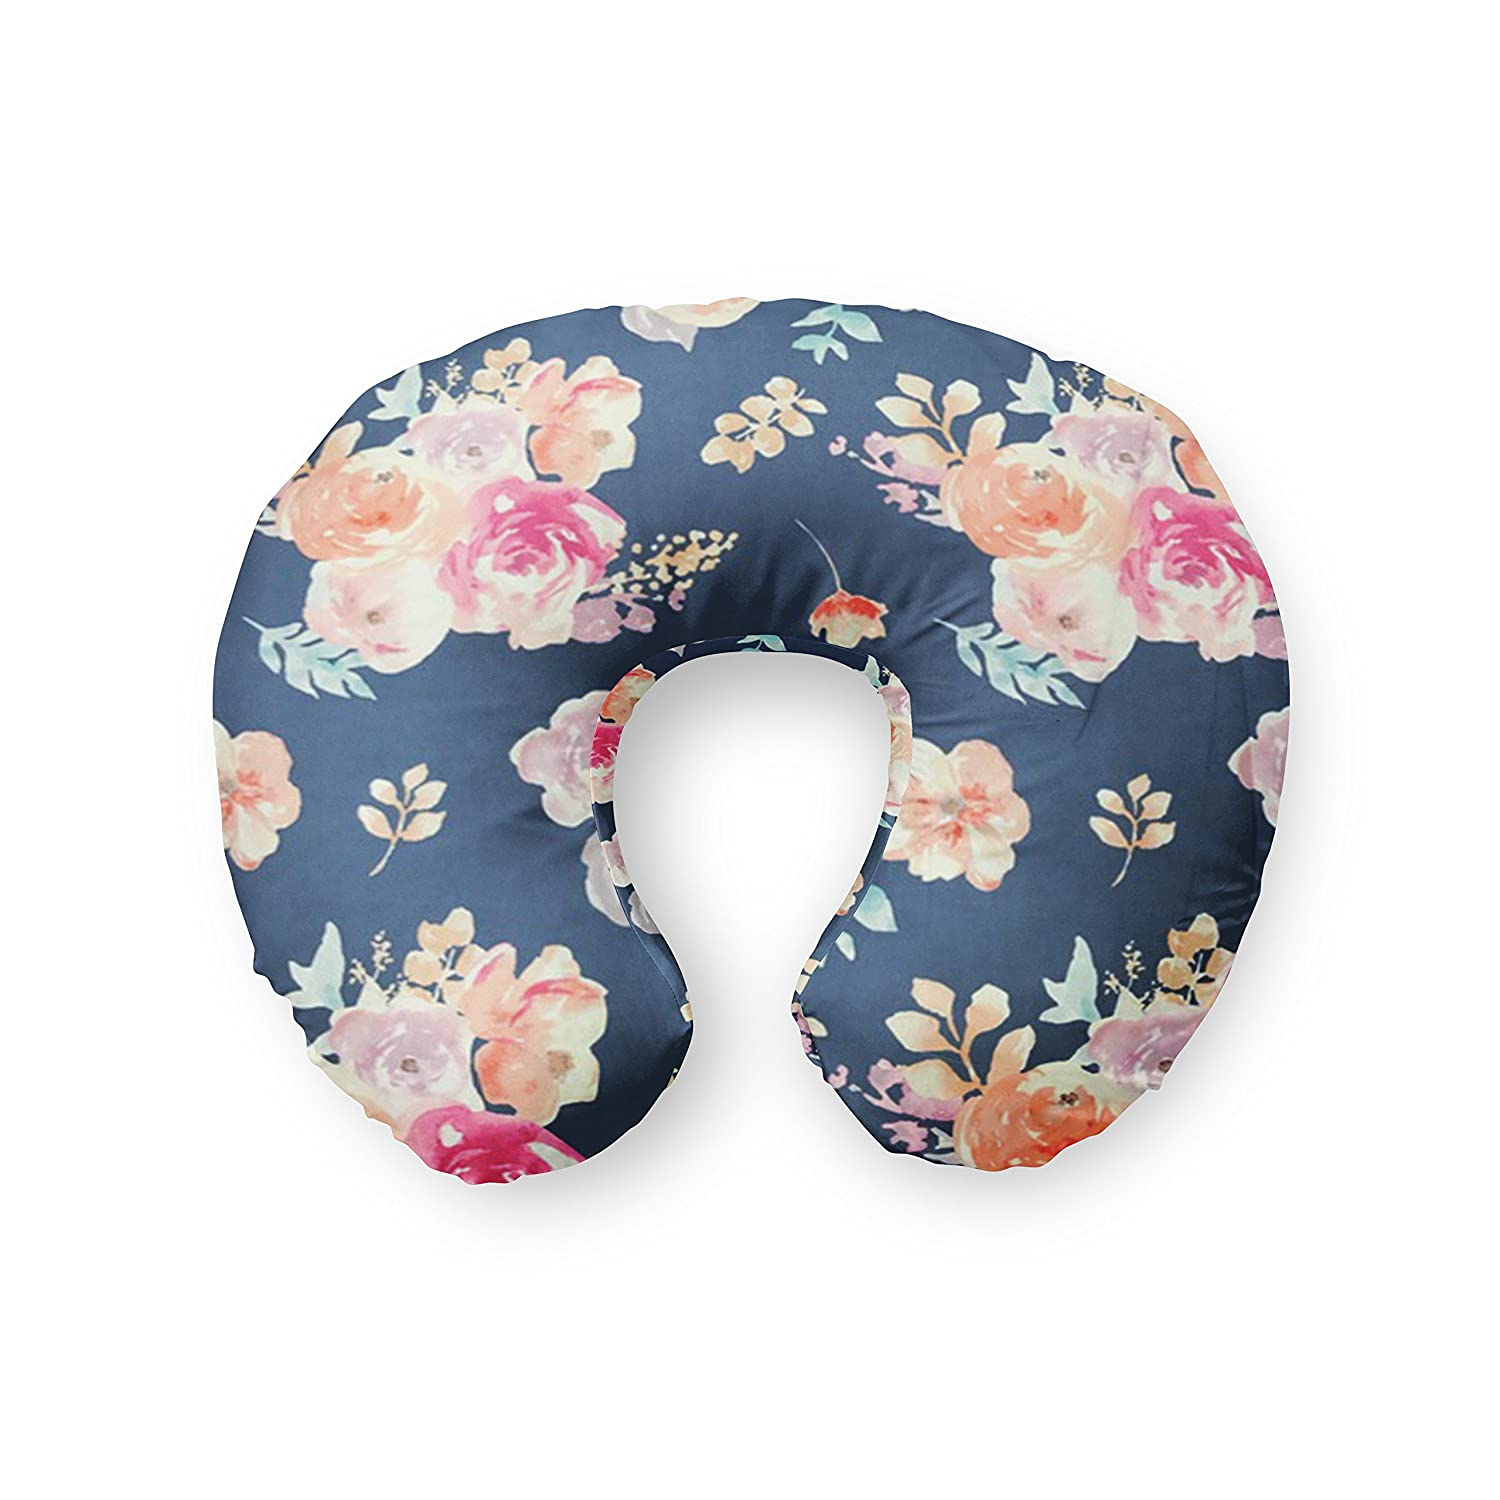 Nursing Pillow Cover in Navy Floral - by Twig + Bird - handmade in the USA Twig+Bird FHTBOP